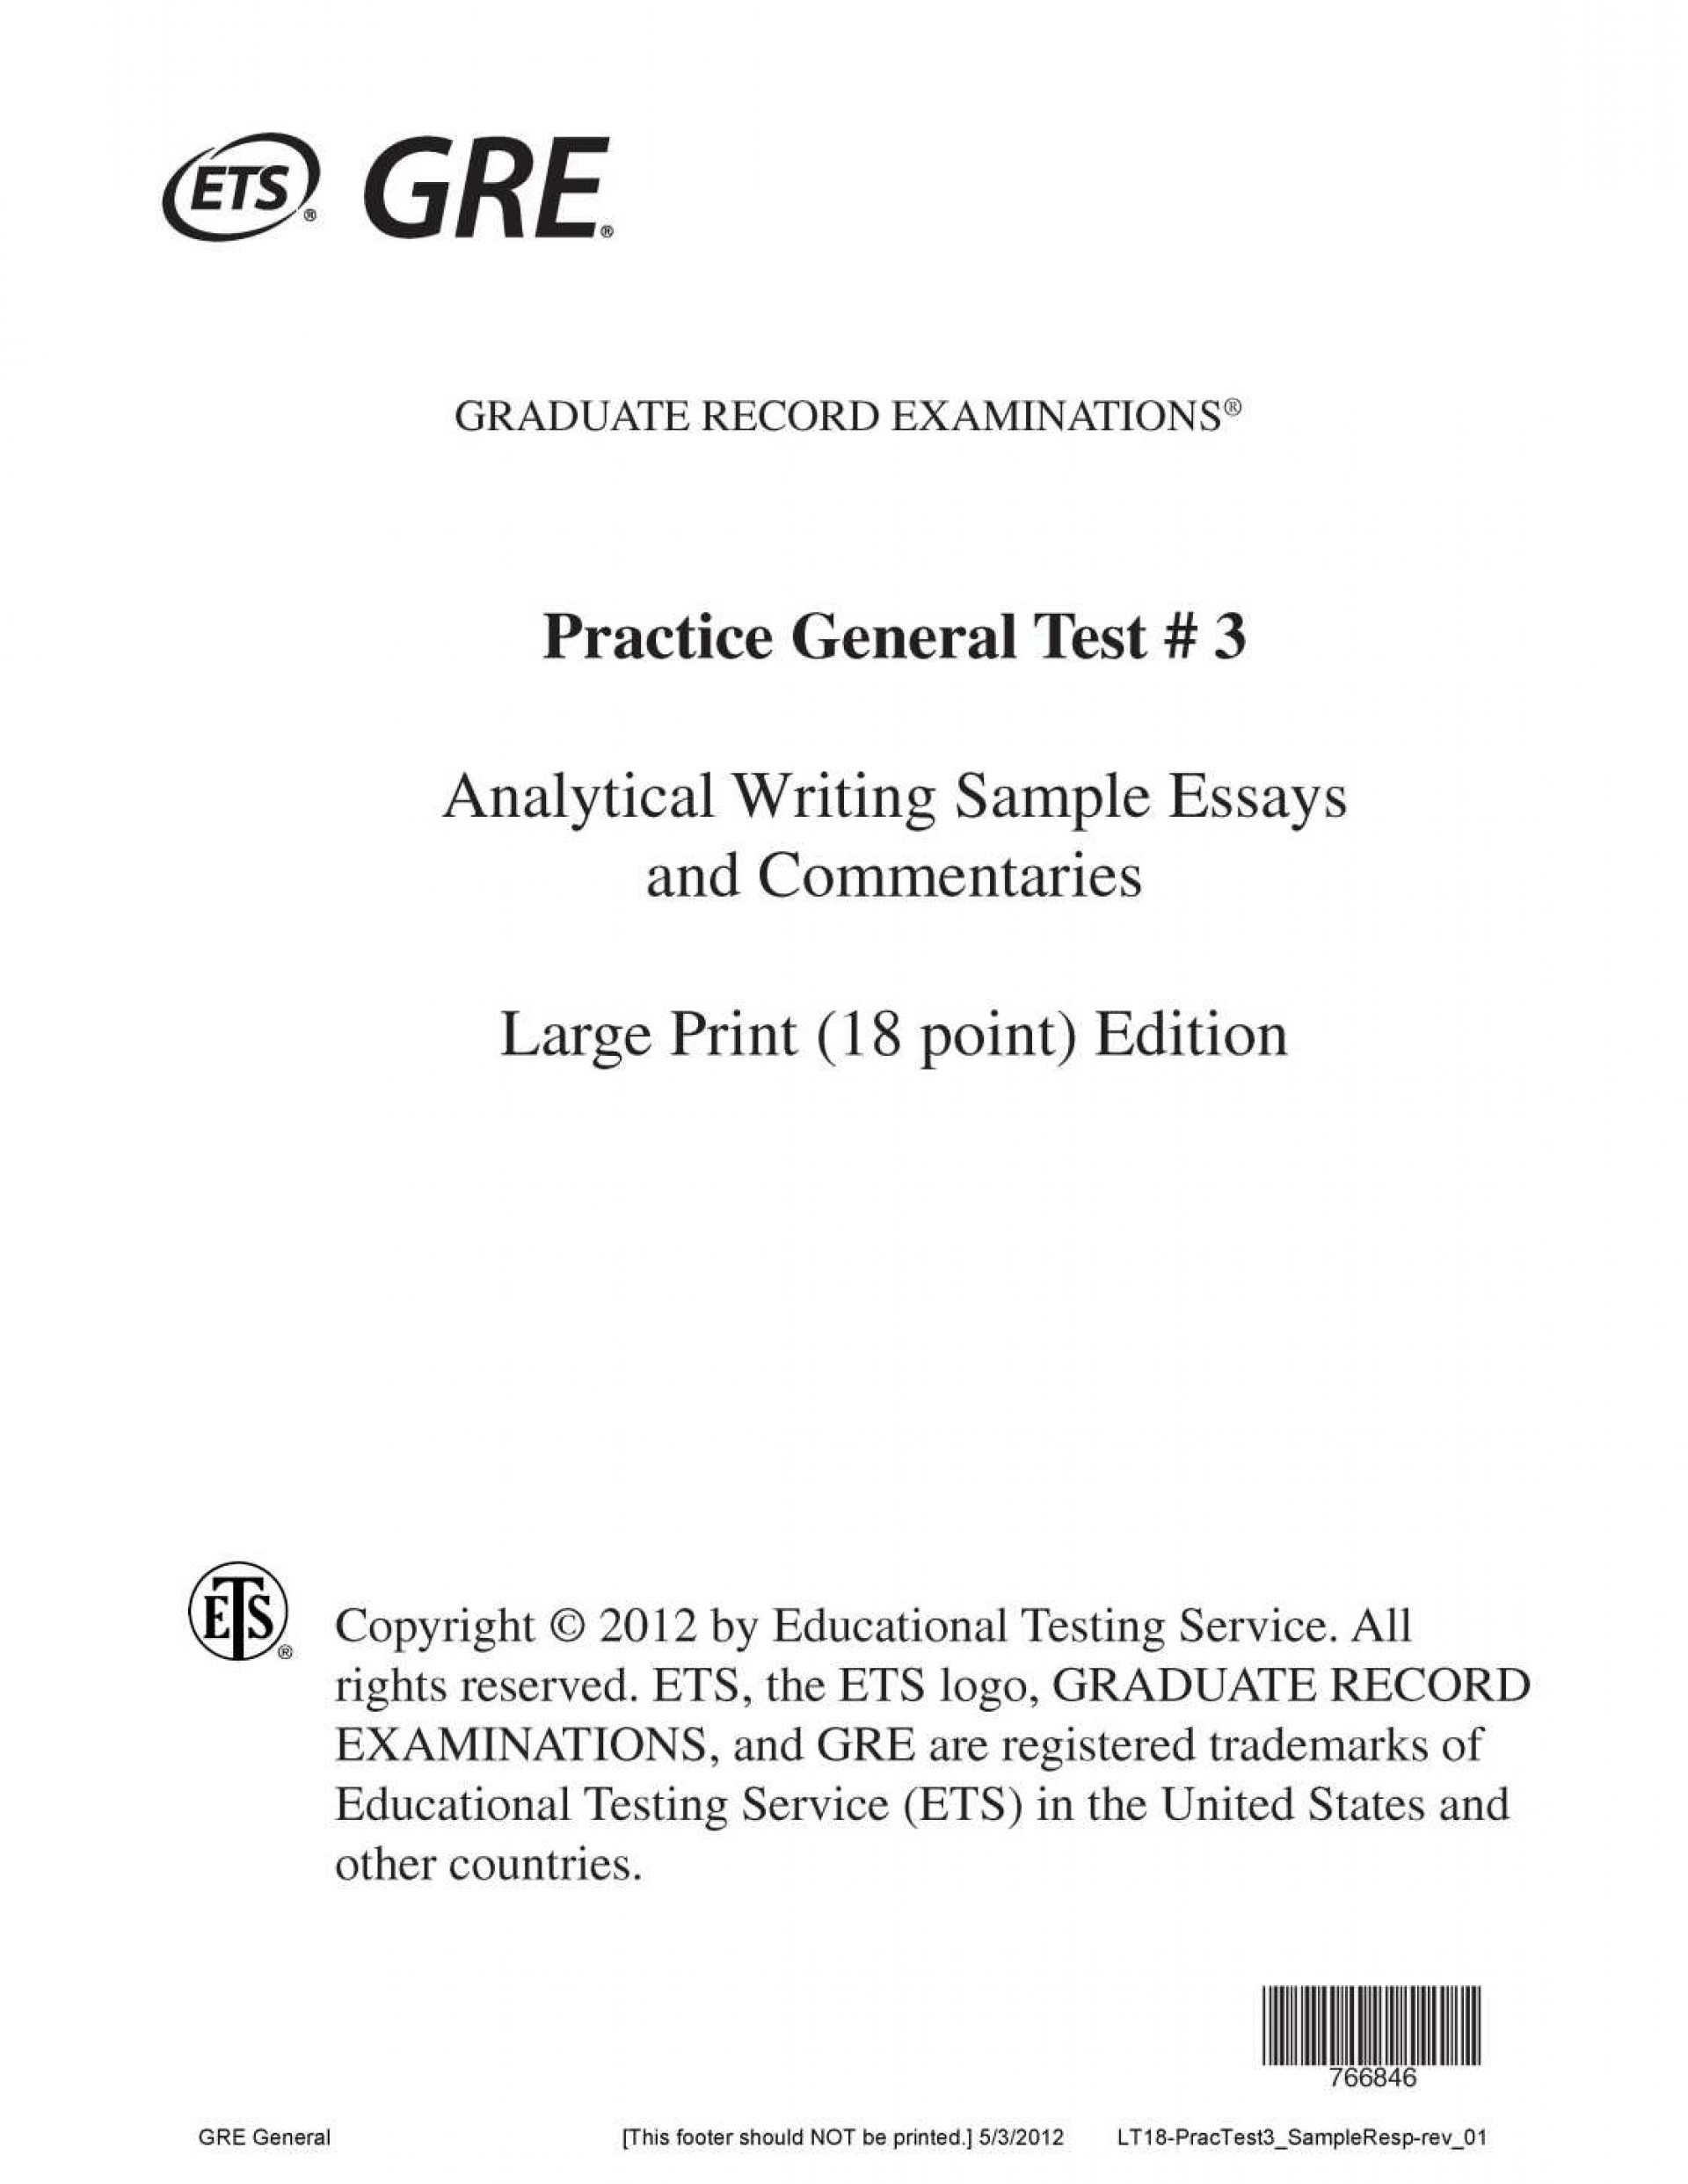 002 Gre Essay Topics Essays Issue Meet The Categories Of Writing Pdf Books Strategies Practices Preparation Tips Format Rare Argument Answers Magoosh Pool 1920